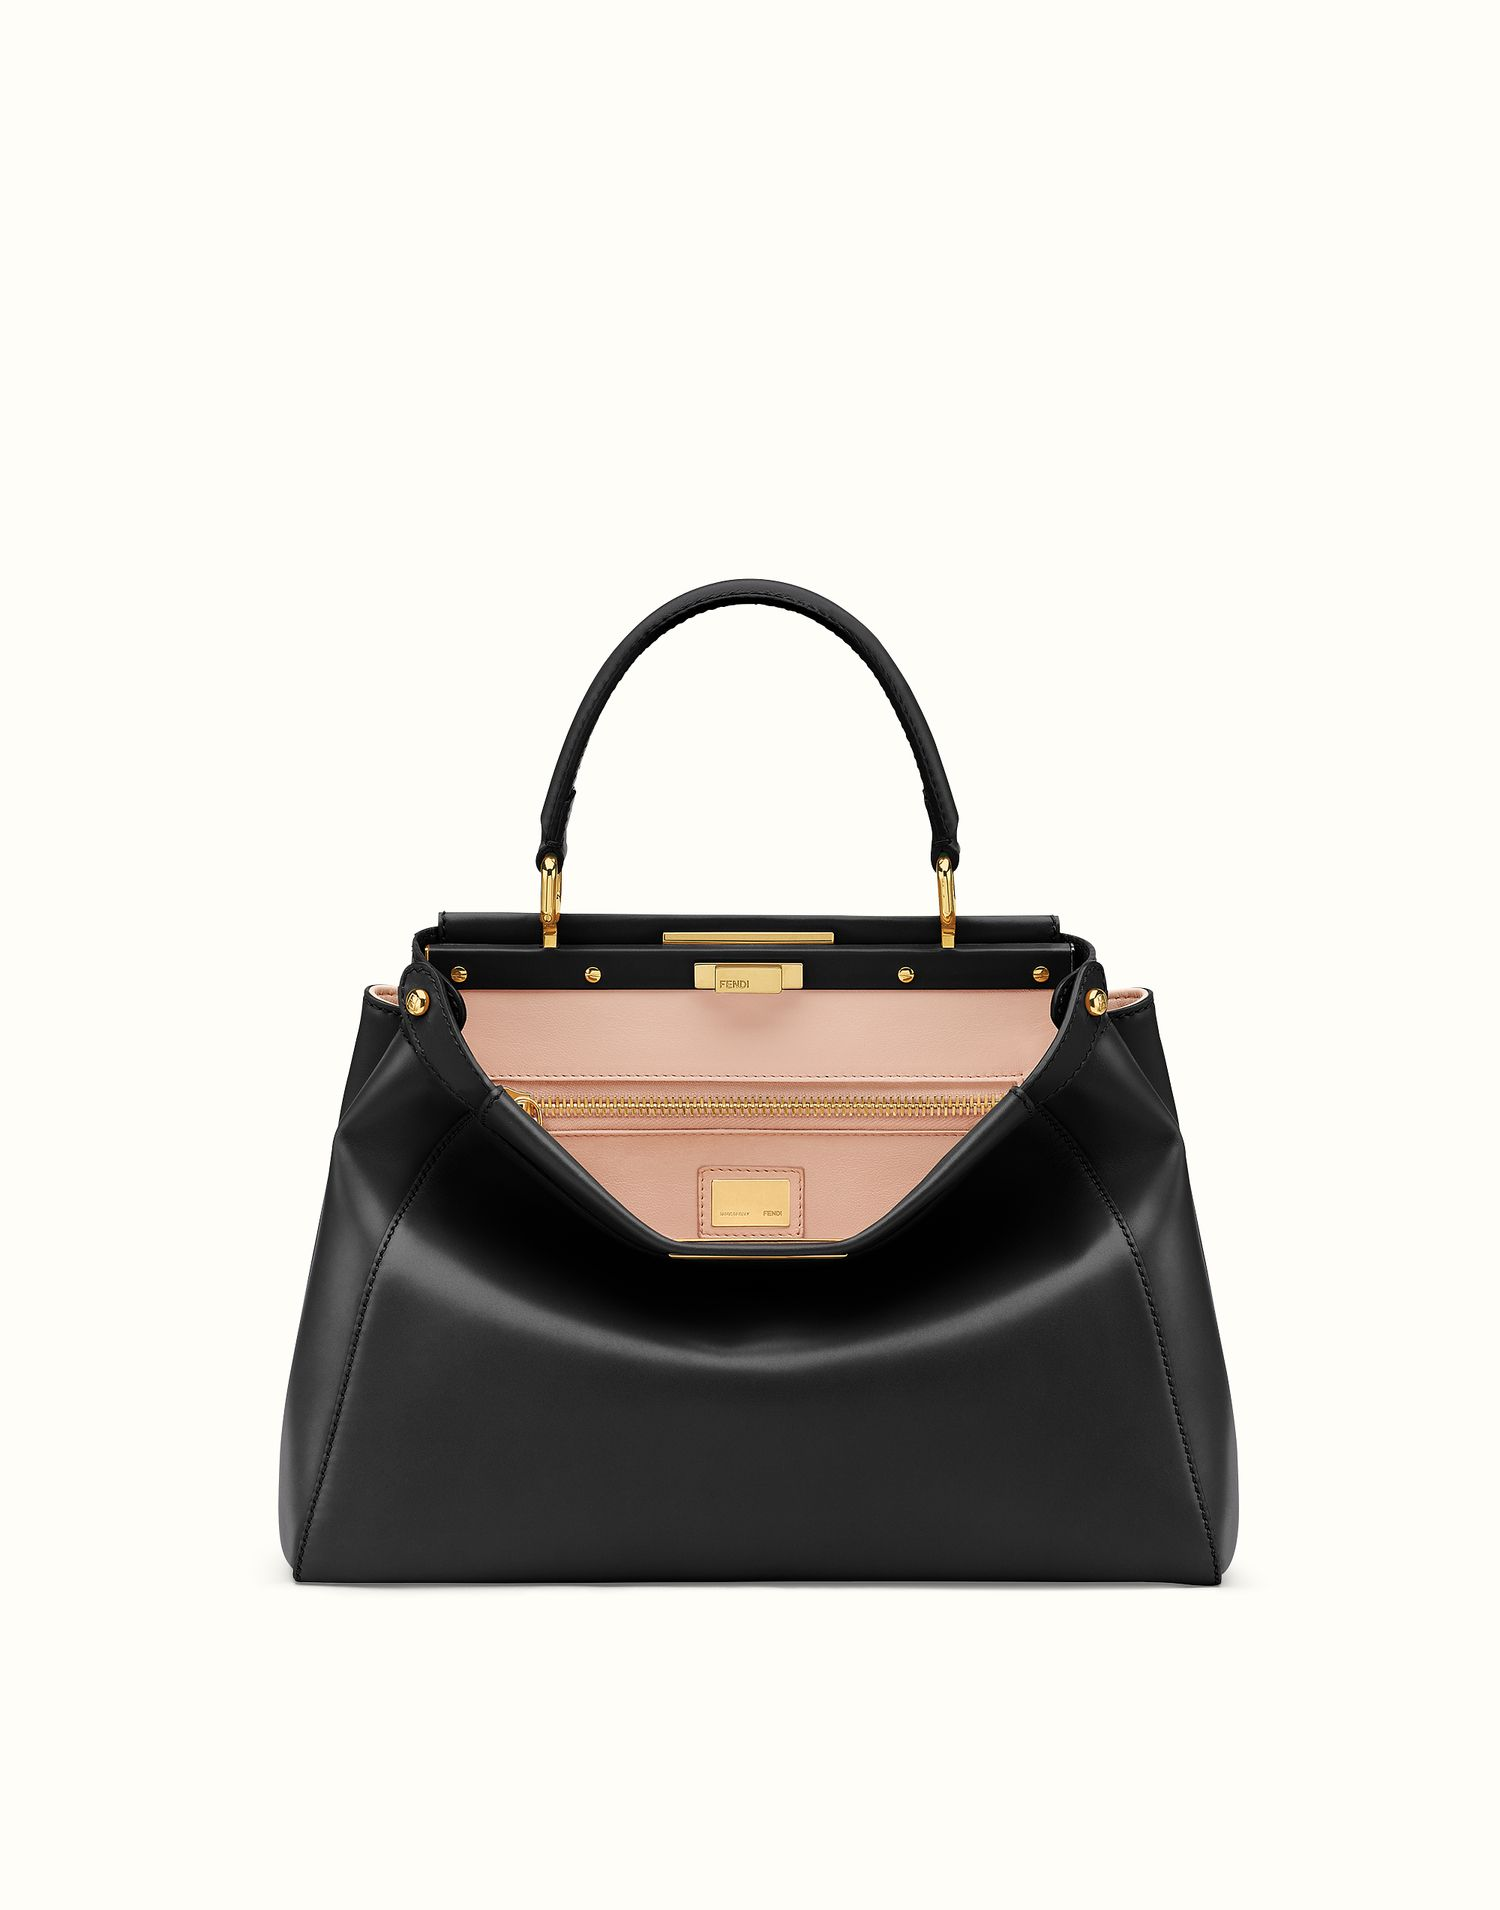 8969c2b7 FENDI | REGULAR PEEKABOO handbag in black leather | Handbags | Fendi ...